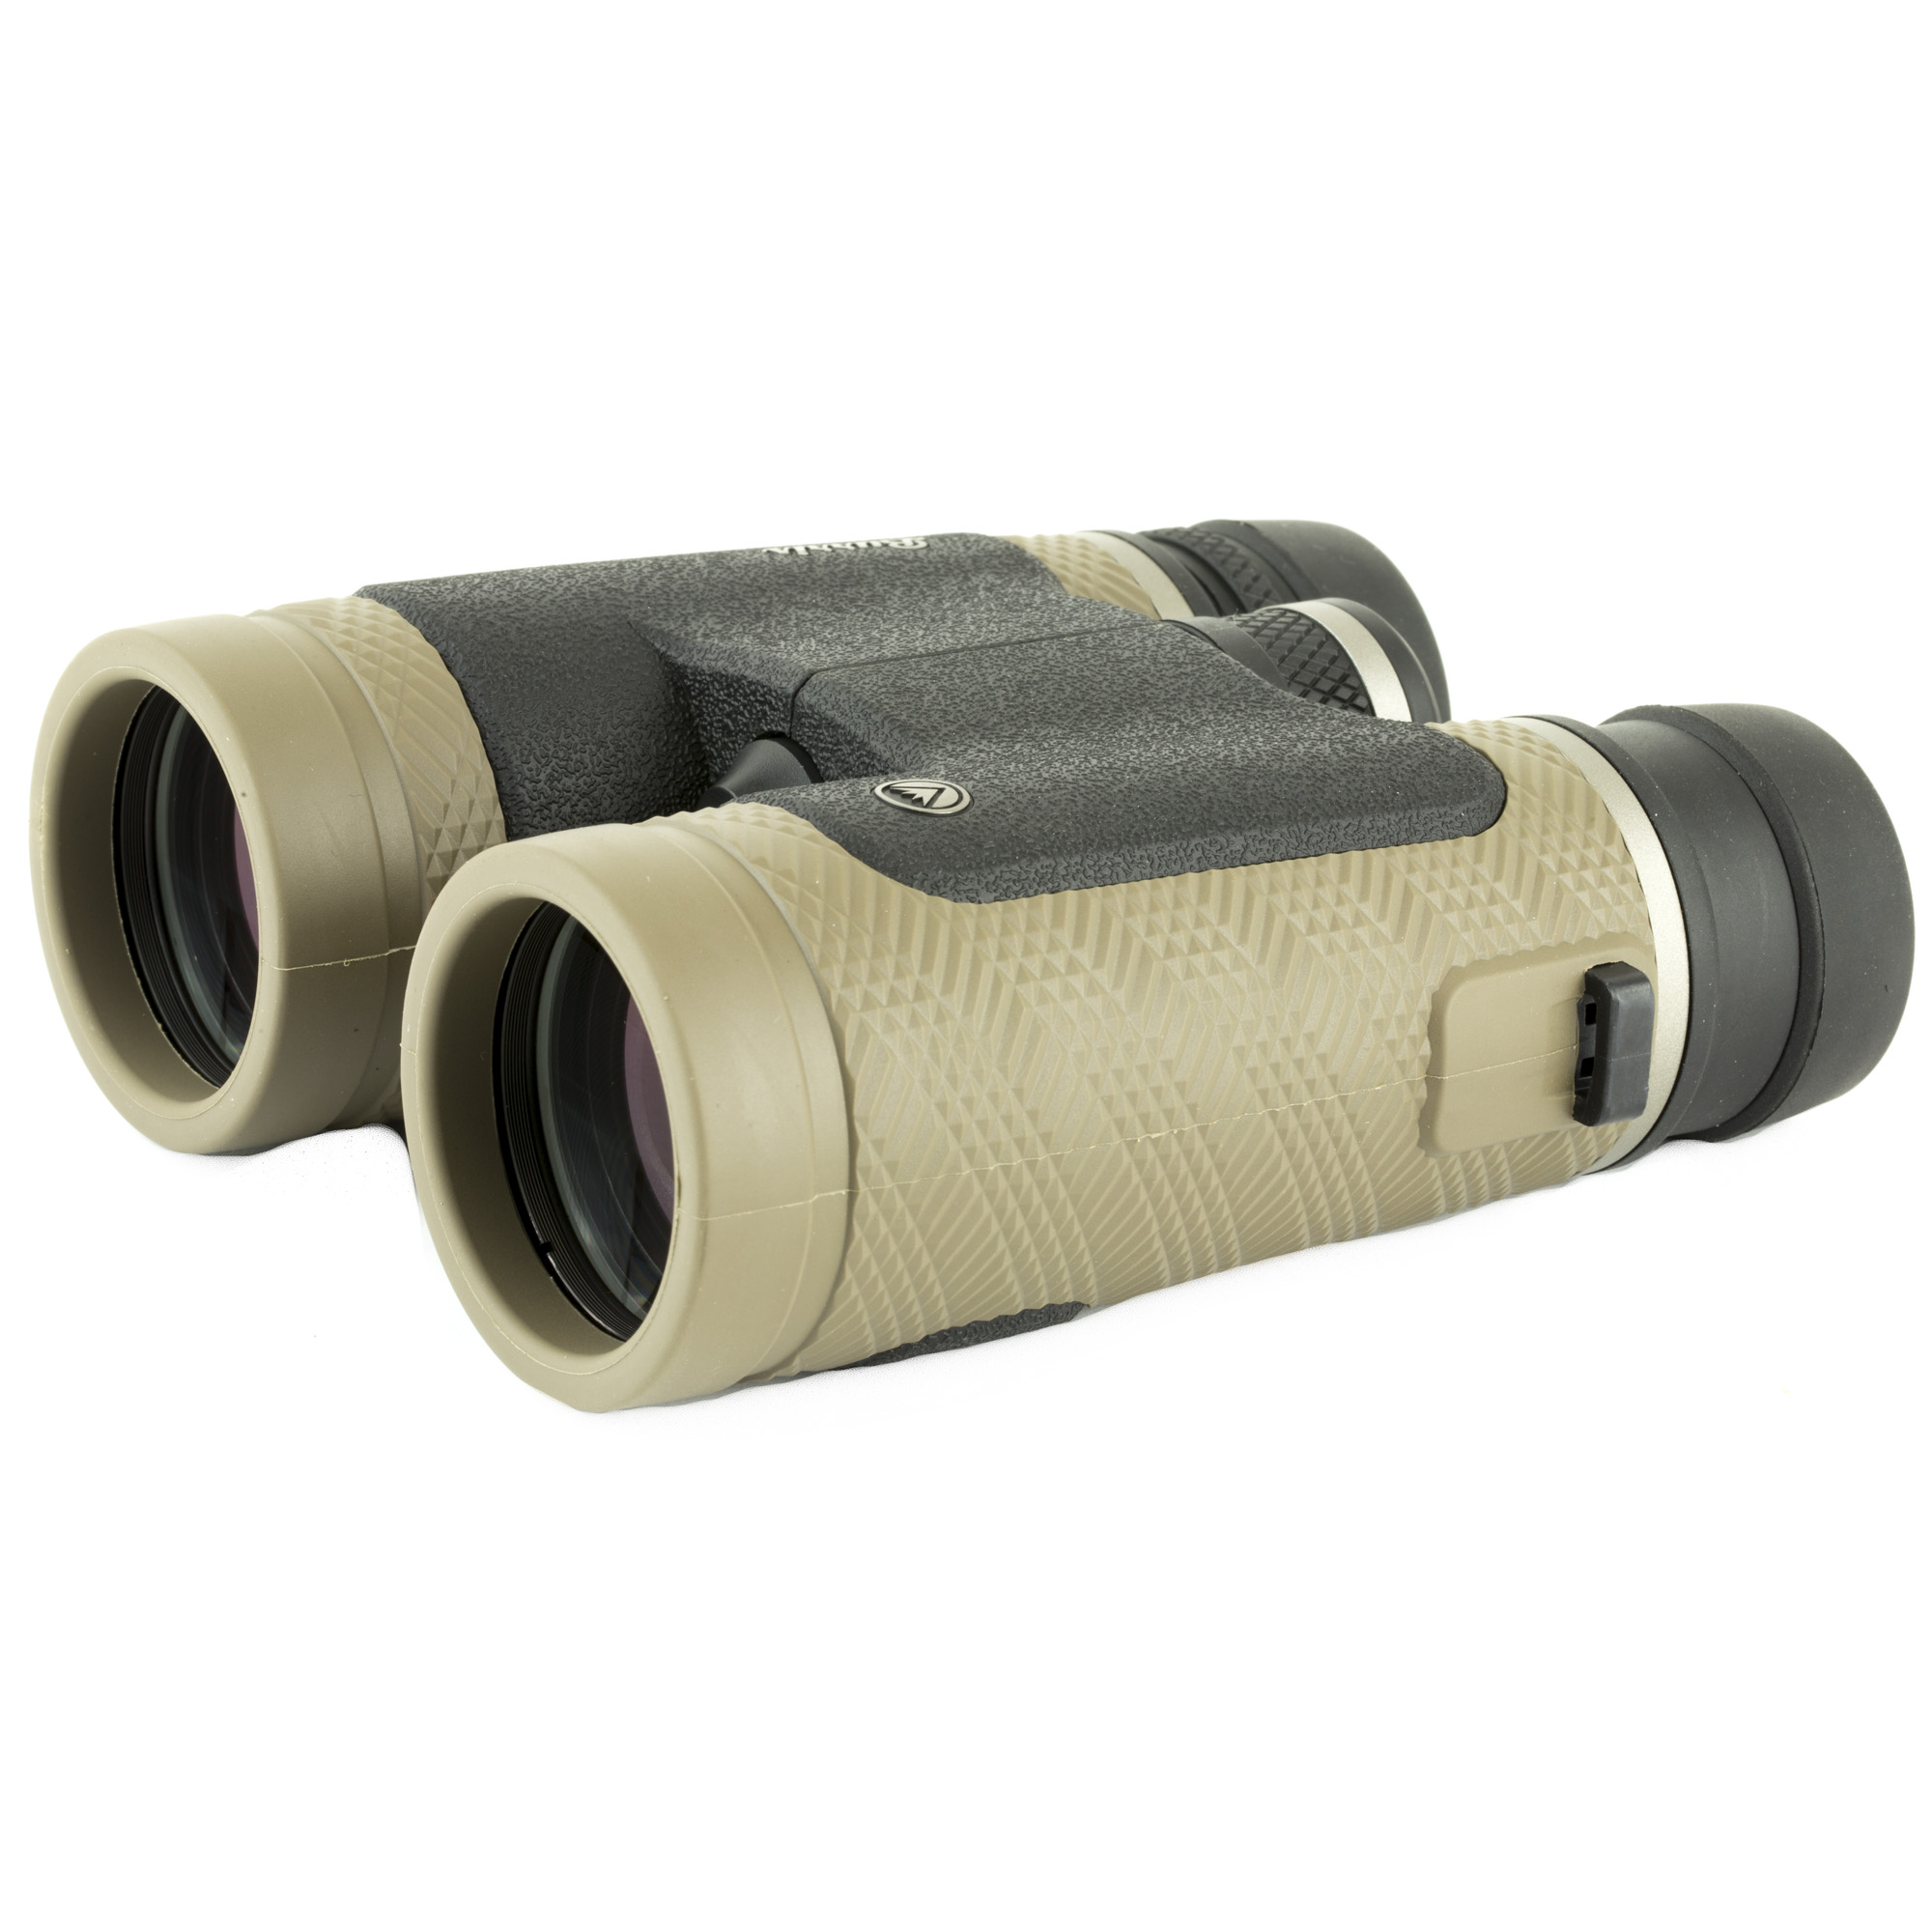 "Hunters have trusted Burris optics for over 40 years and the new Droptine binoculars continue the tradition of reliability"" affordability and performance. Versatile enough for any style of hunting"" they are big on performance but won't slow you down. 10x magnification brings the minute details into focus without additional weight and bulk."